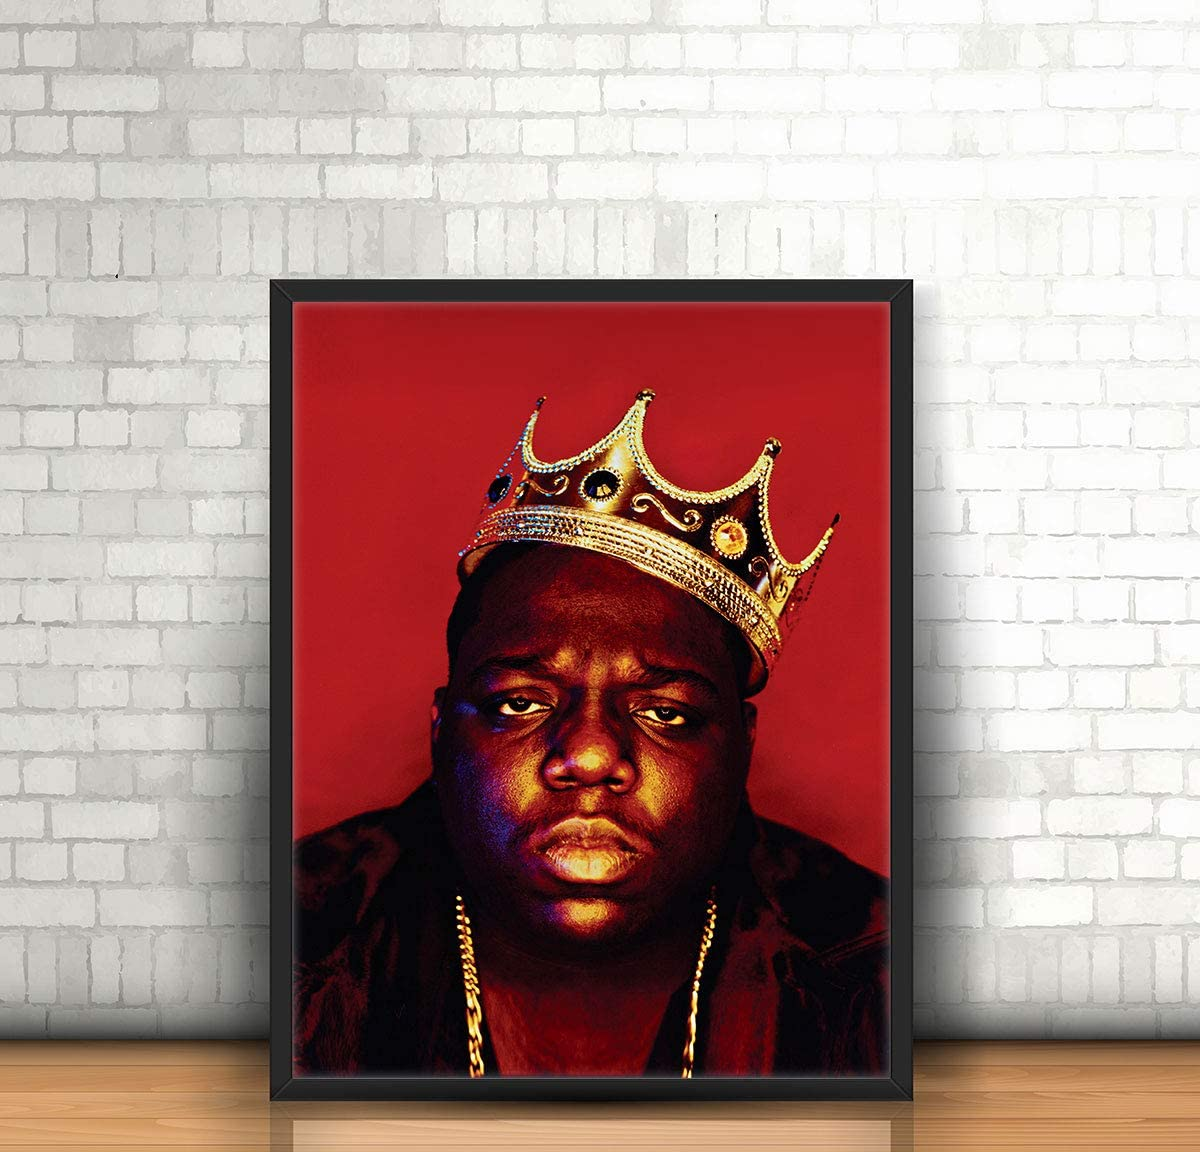 A0 A1 A2 A3 A4 Sizes Biggie Smalls Notorious BIG Luke Cage Giant CANVAS ART